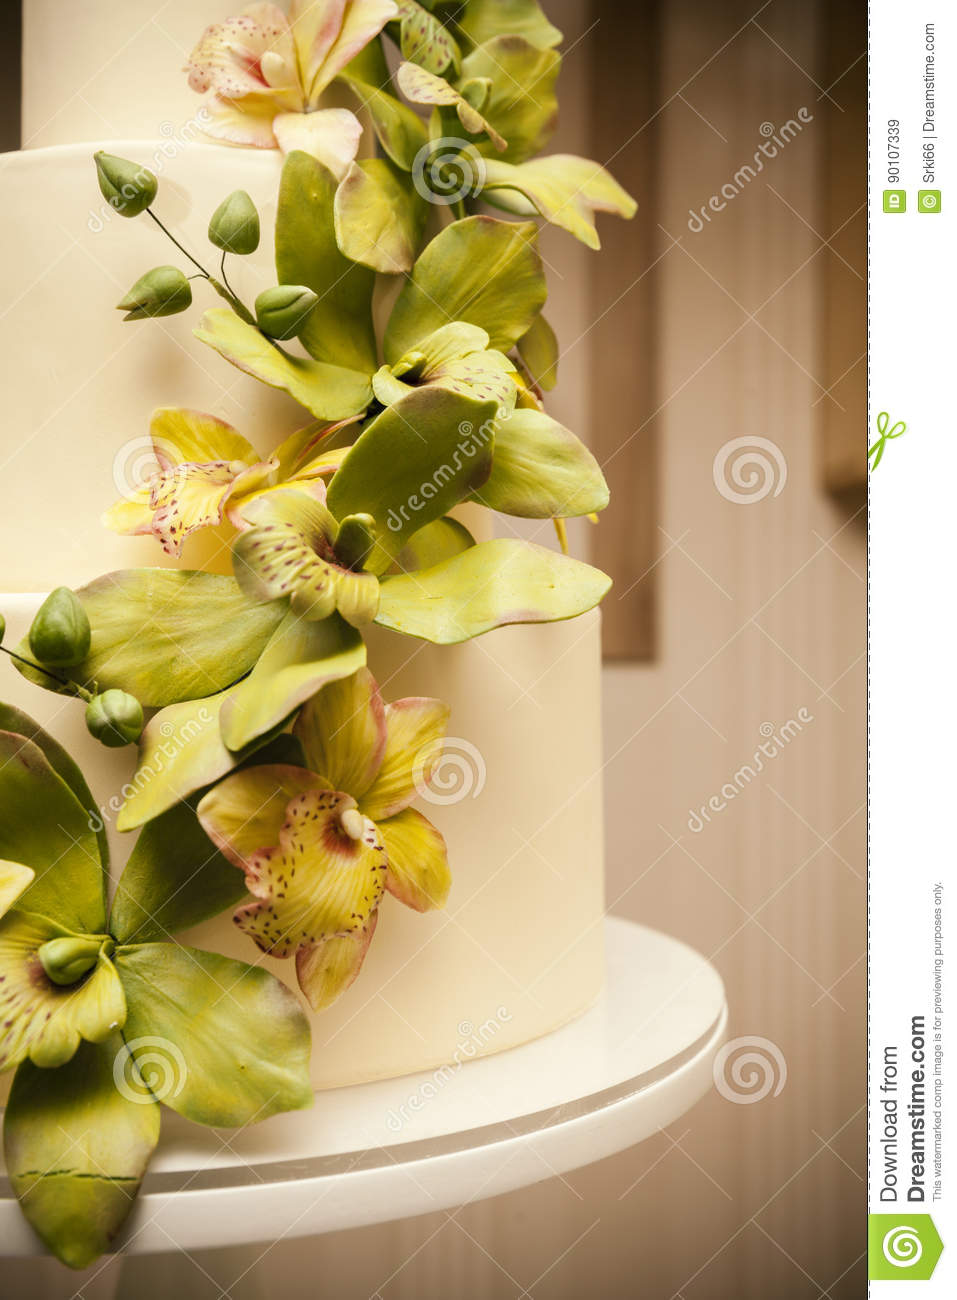 Wedding Cake With Orchids Marzipan Stock Image - Image of dessert ...